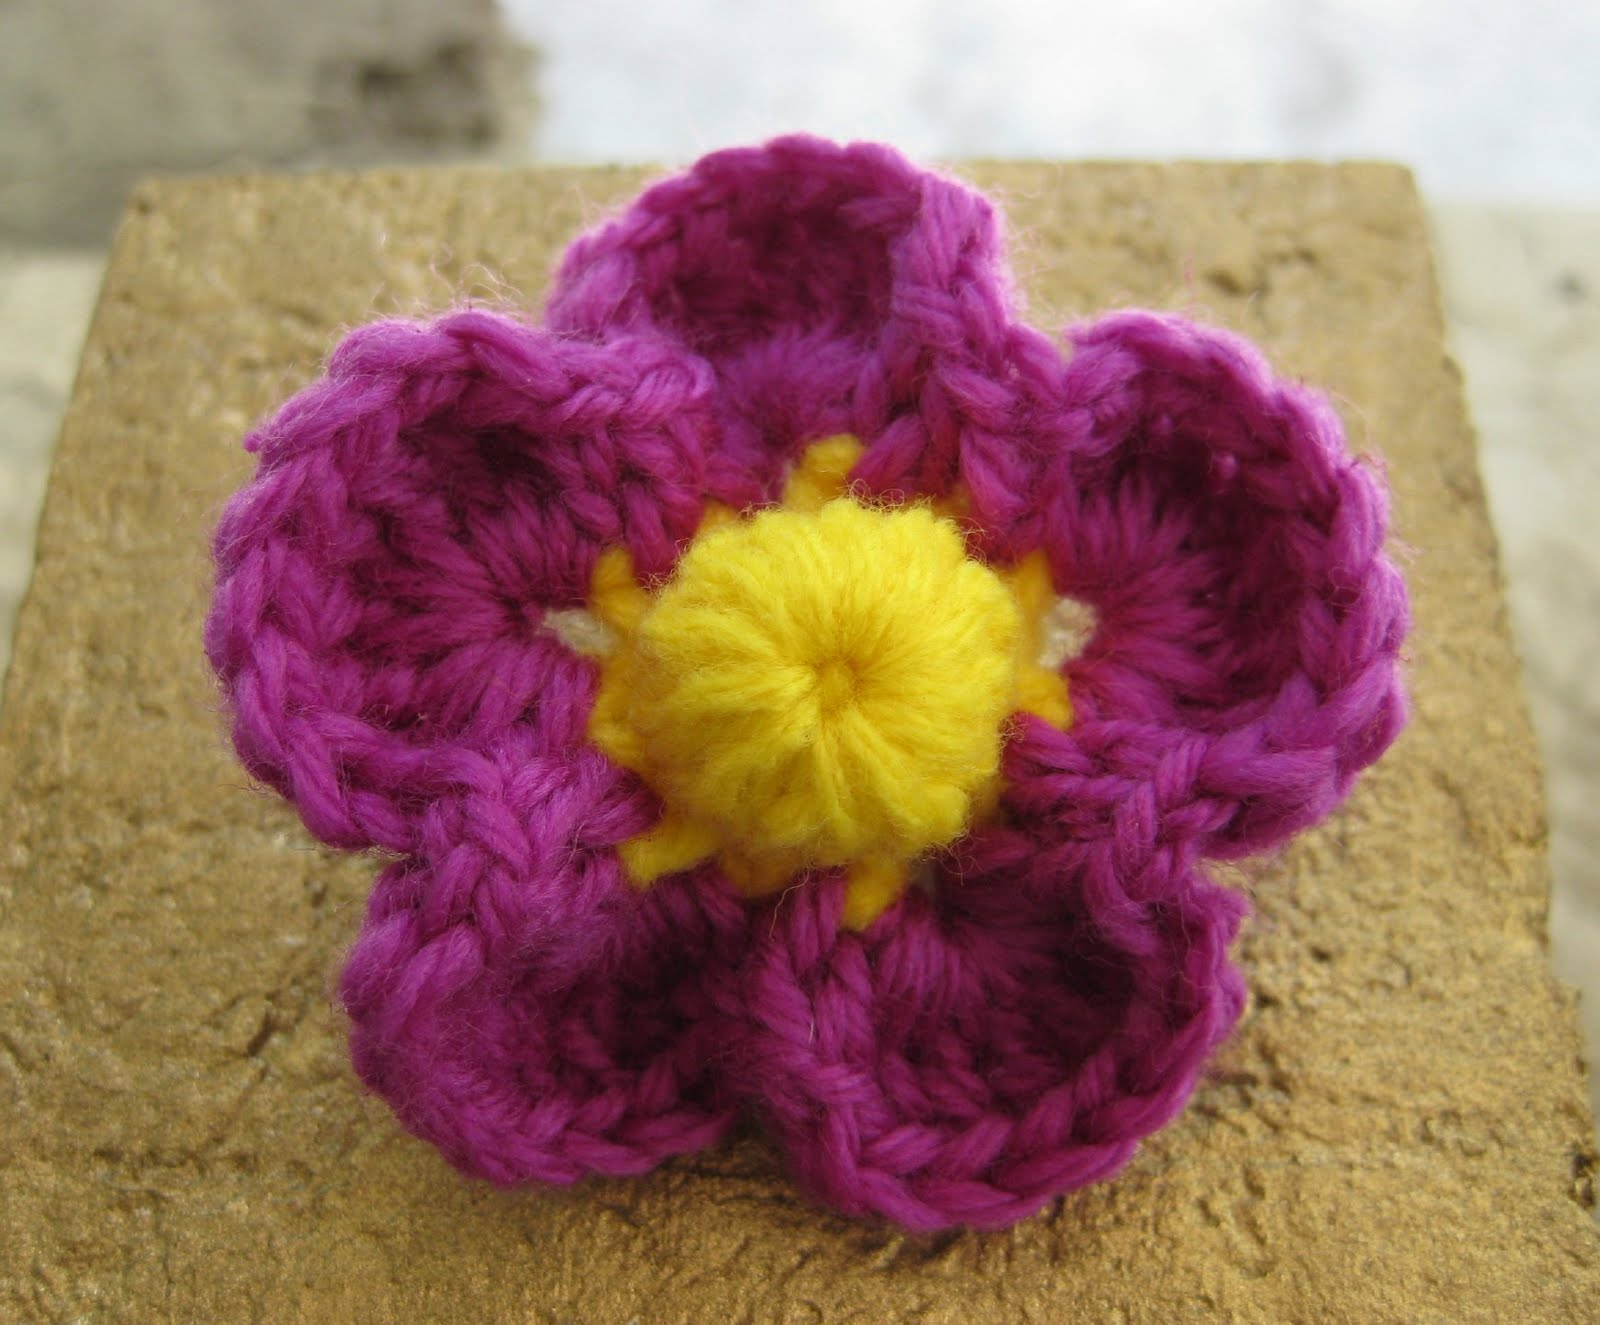 Over 50 Free Crocheted Motif Patterns at AllCrafts!